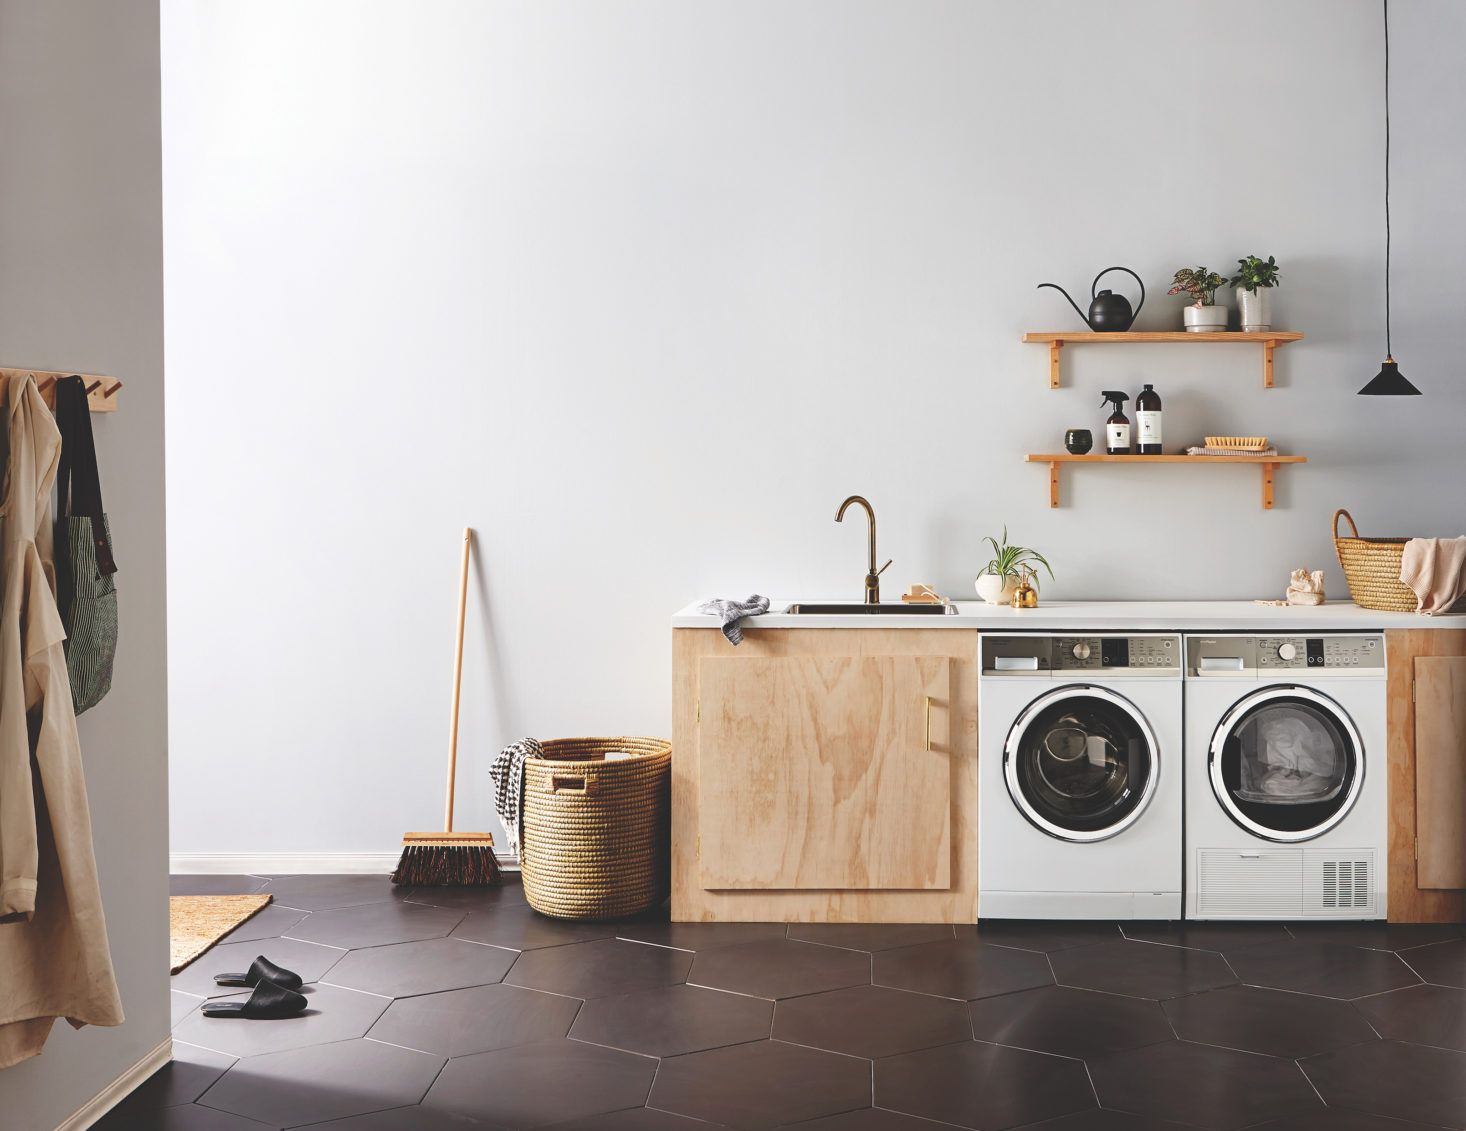 laundry room, grey floor, white wall, wooden cabinet, white wasing machine, wooden floating shelves, black pendant